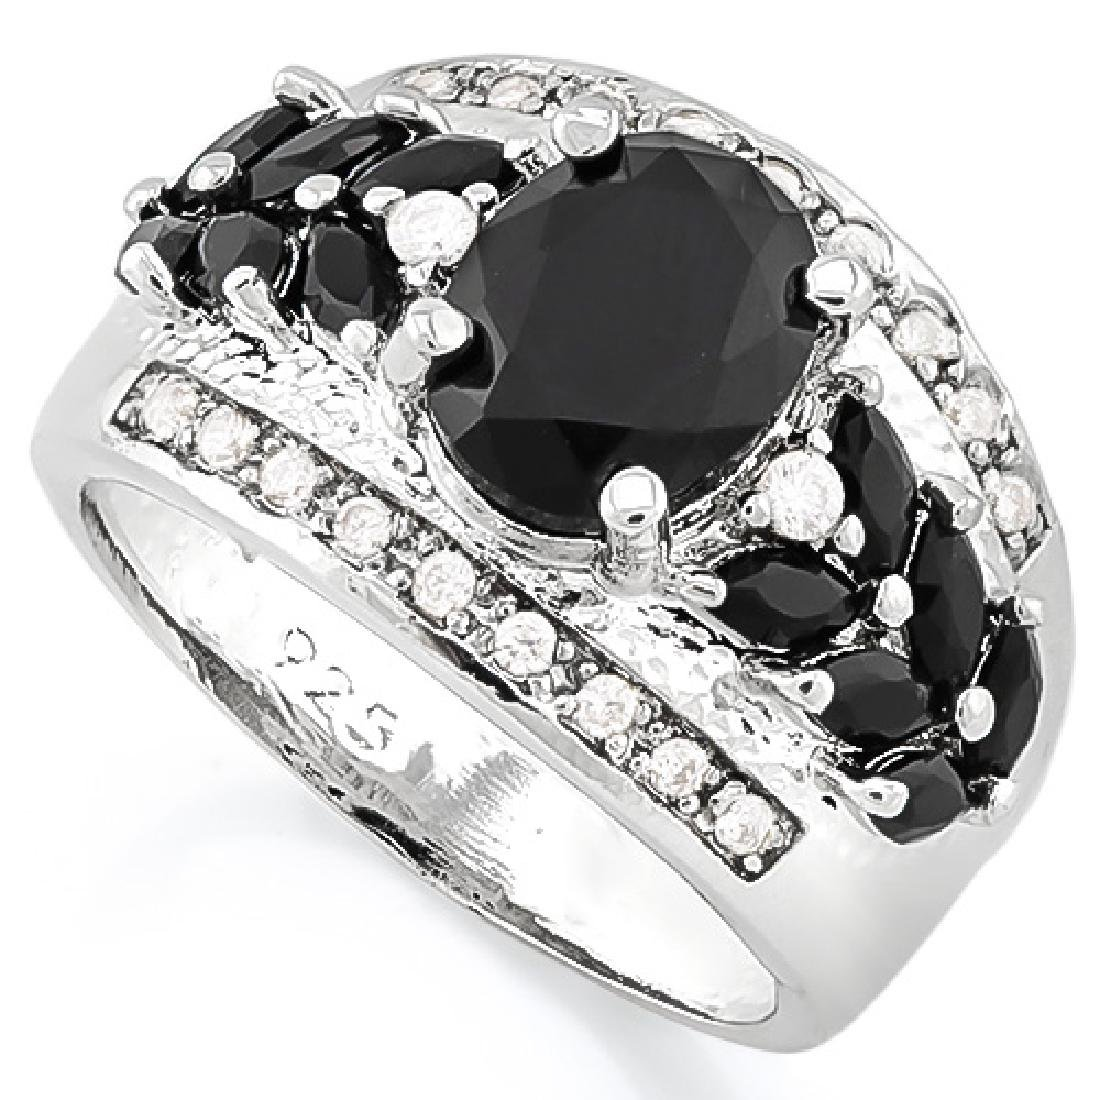 CREATED BLACK SAPPHIRE 925 STERLING SILVER RING